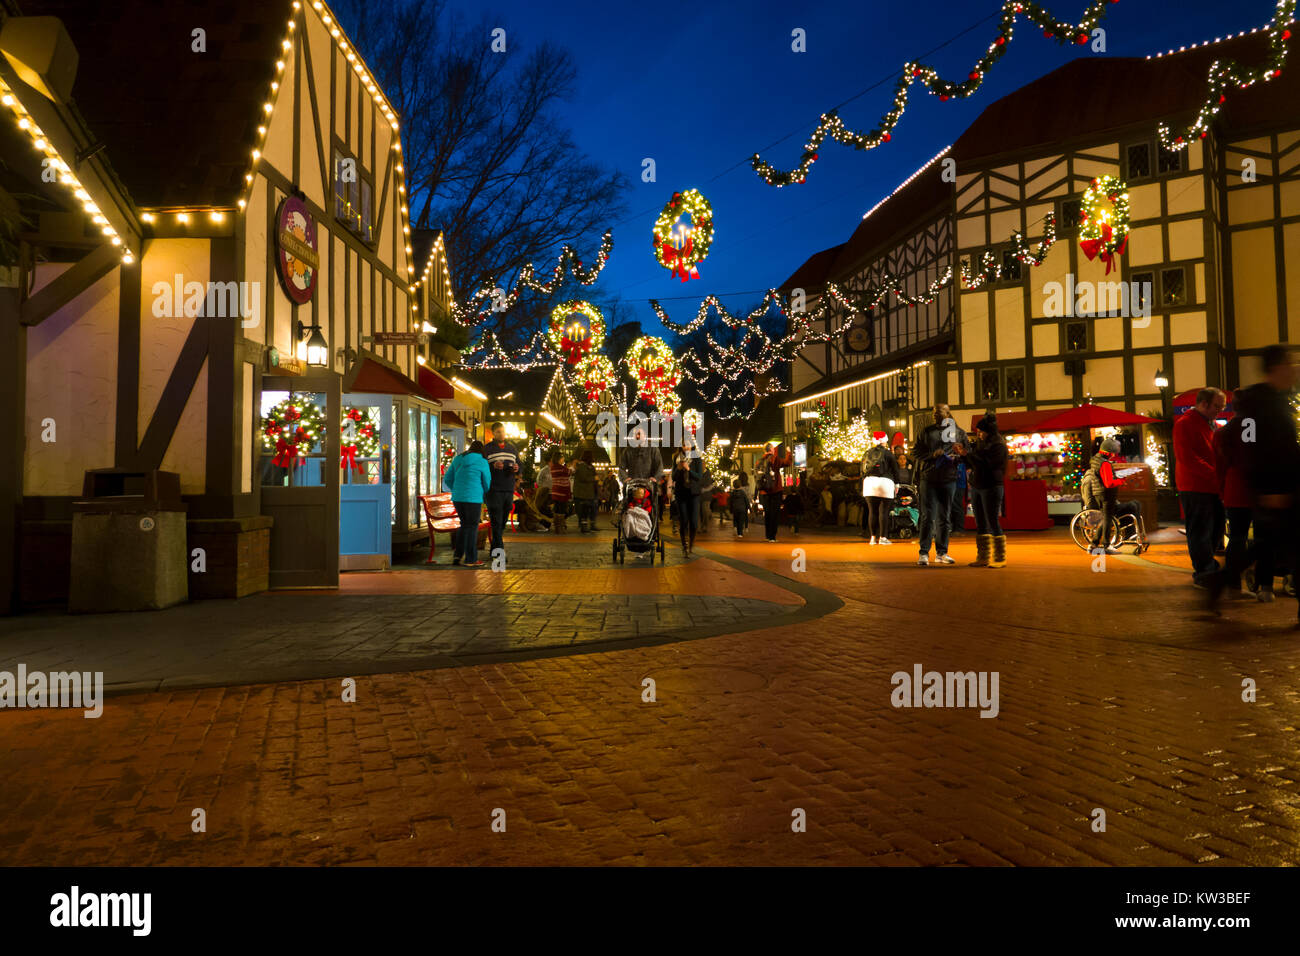 usa-virginia-va-williamsburg-christmas-holiday-at-busch-gardens-theme-KW3BEF.jpg